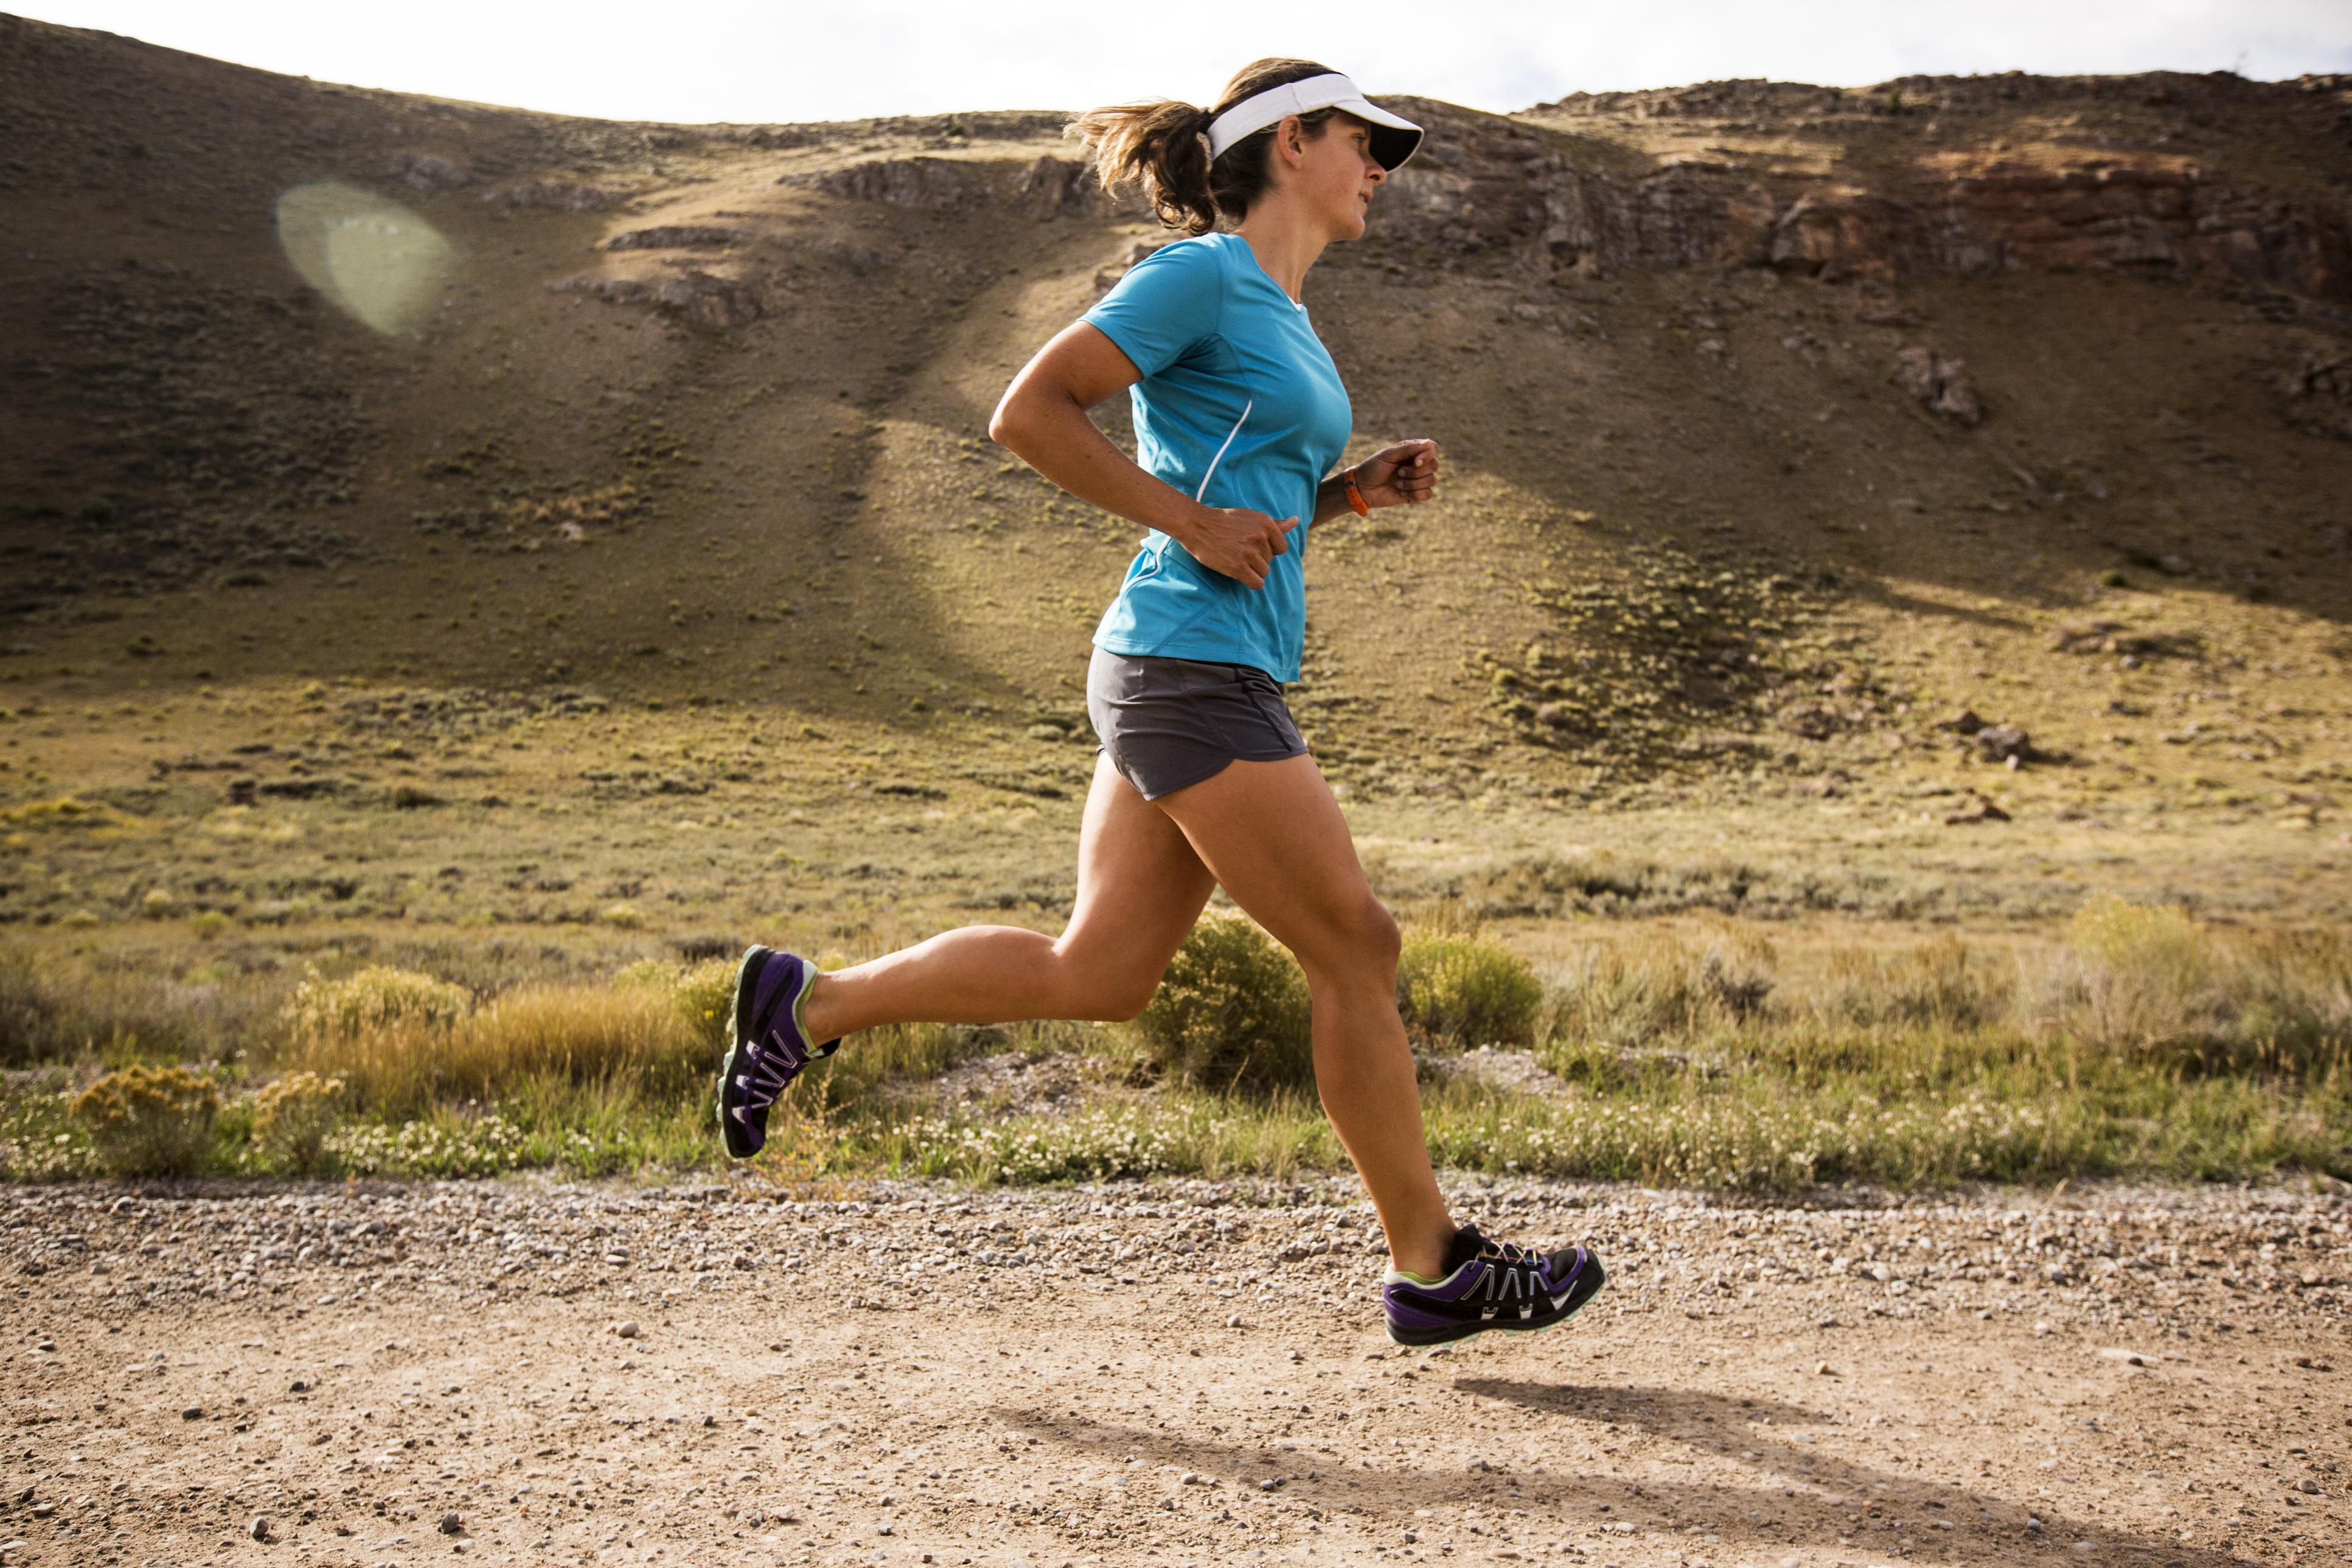 How Much Fat Can I Burn by Running?